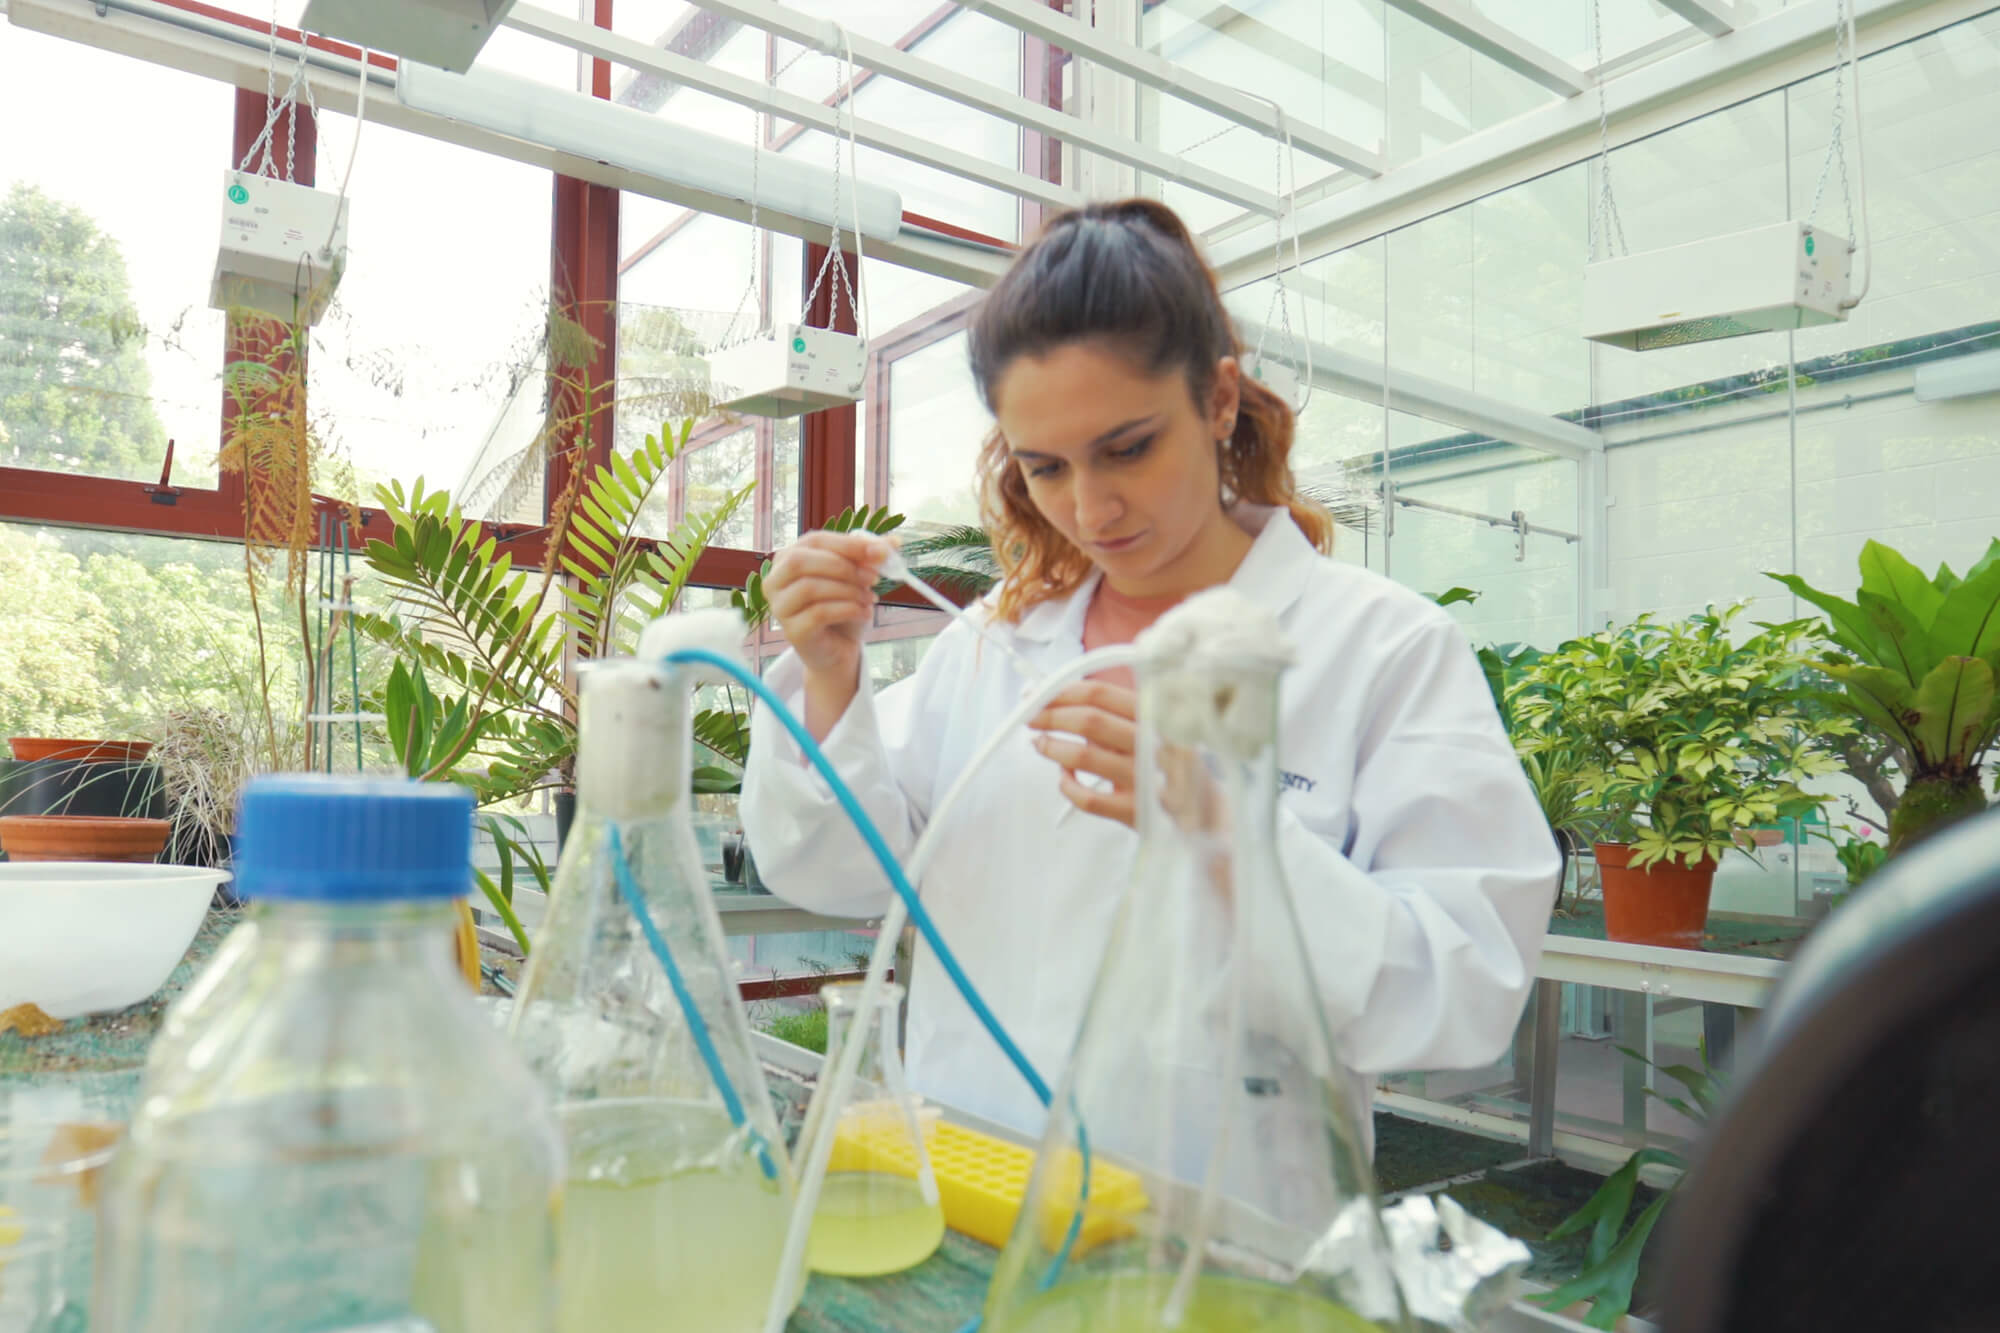 A University of Derby Student in a greenhouse research facility.